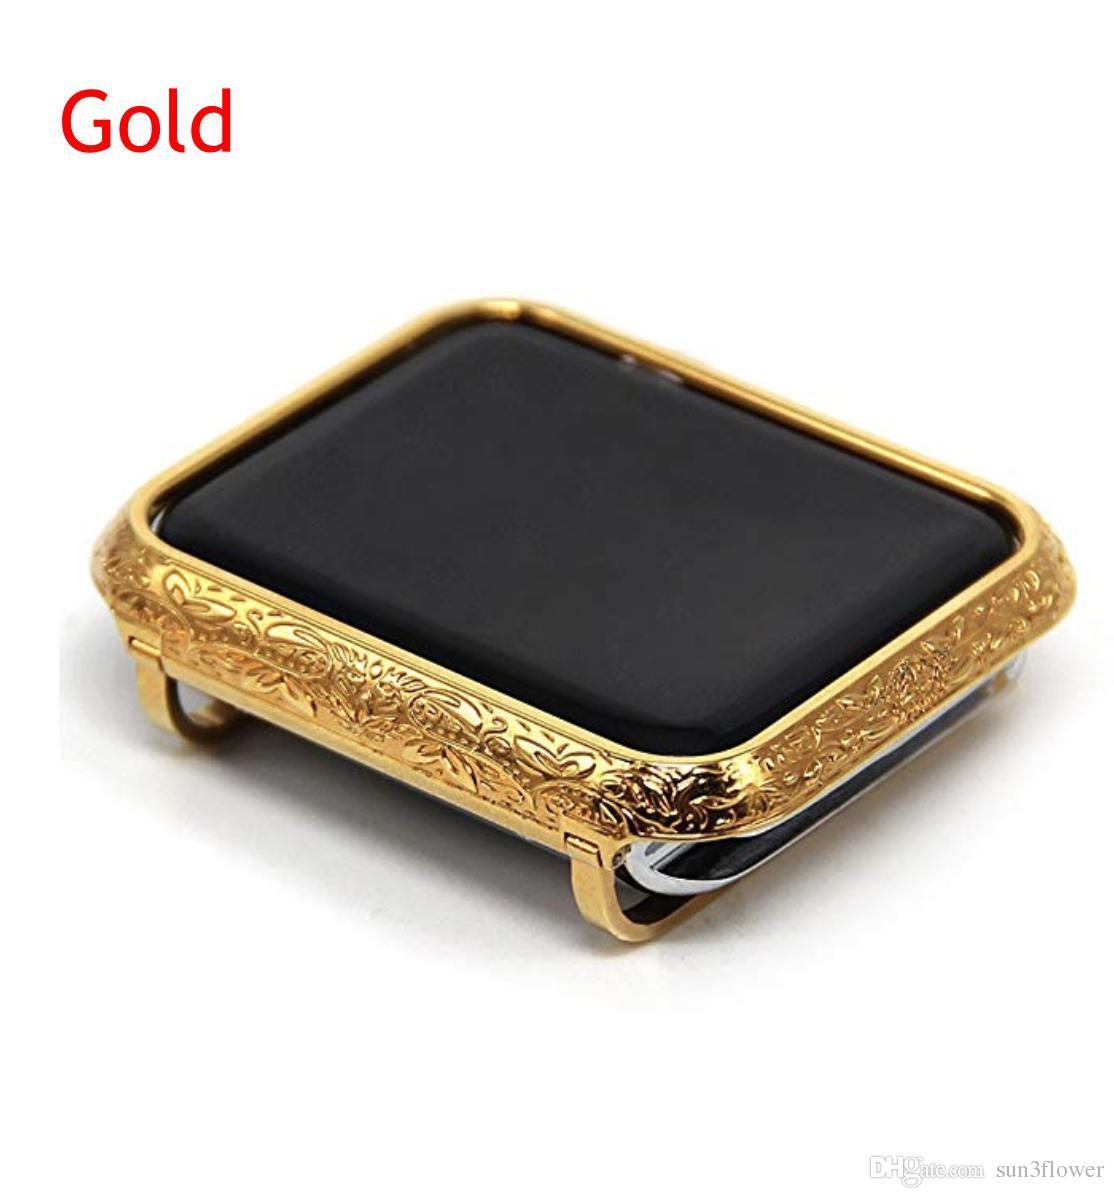 online store 3992f 6d525 CNC Engraved Ornate Gold Watch Case Embossment Flower Design Platinum Case  Bezel Cover For Apple Watch 38mm 42mm Series 1 2 3 Iwatch Cases Stainless  ...